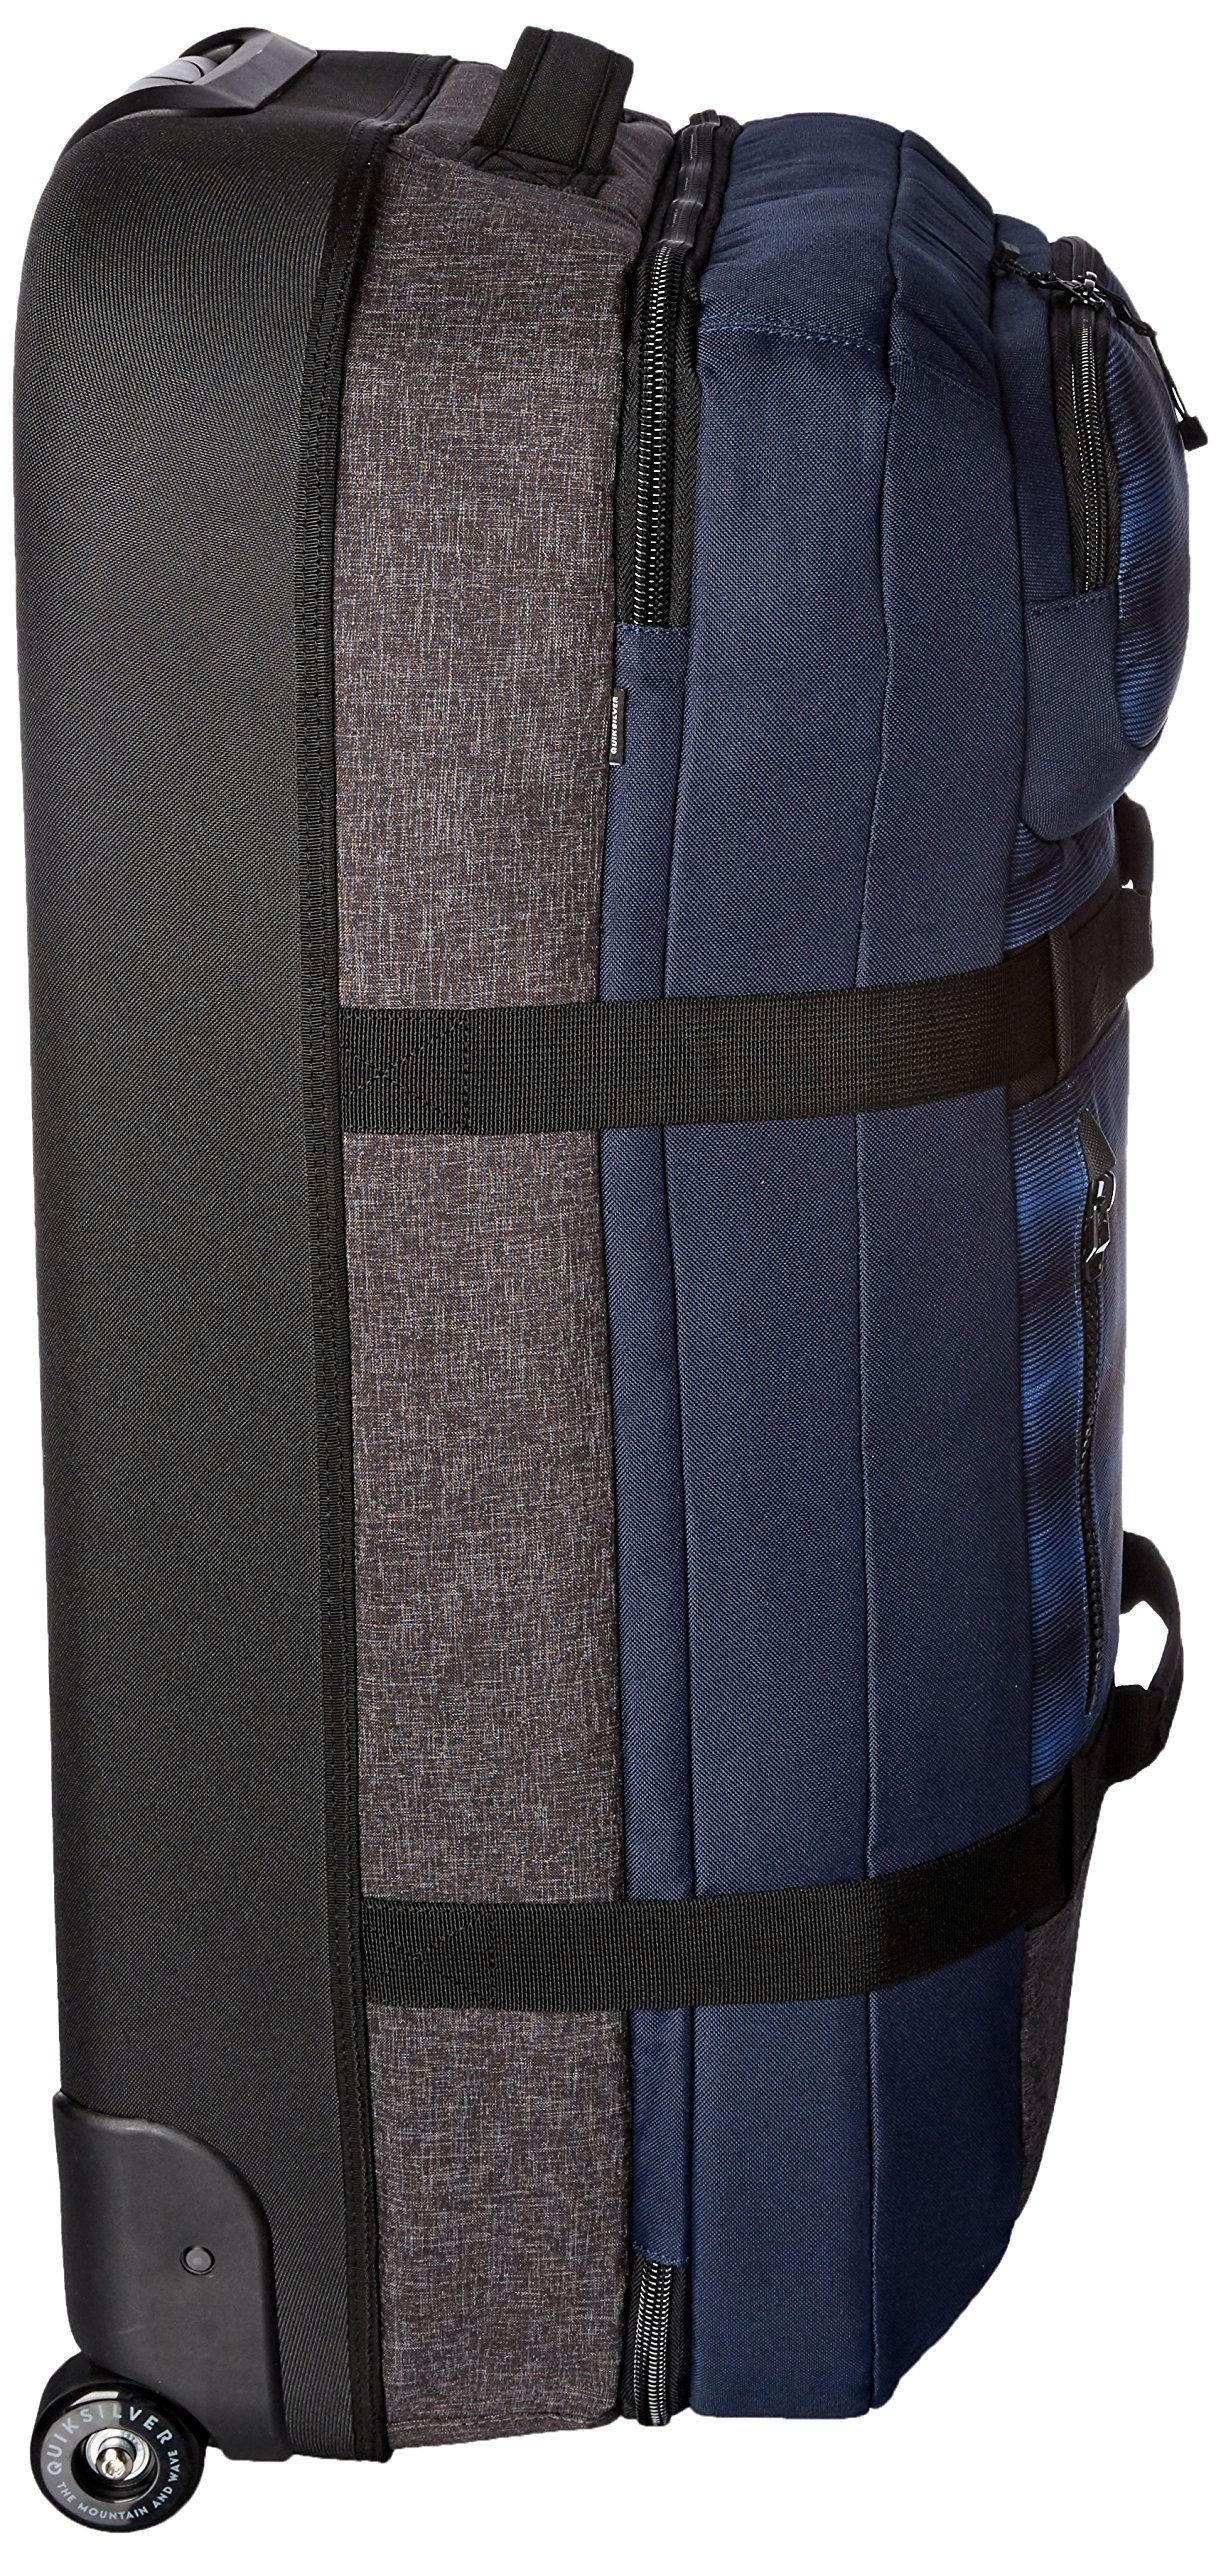 Quiksilver Young Men's Reach Luggage Roller Bag Accessory, -navy blazer, One Size by Quiksilver (Image #3)